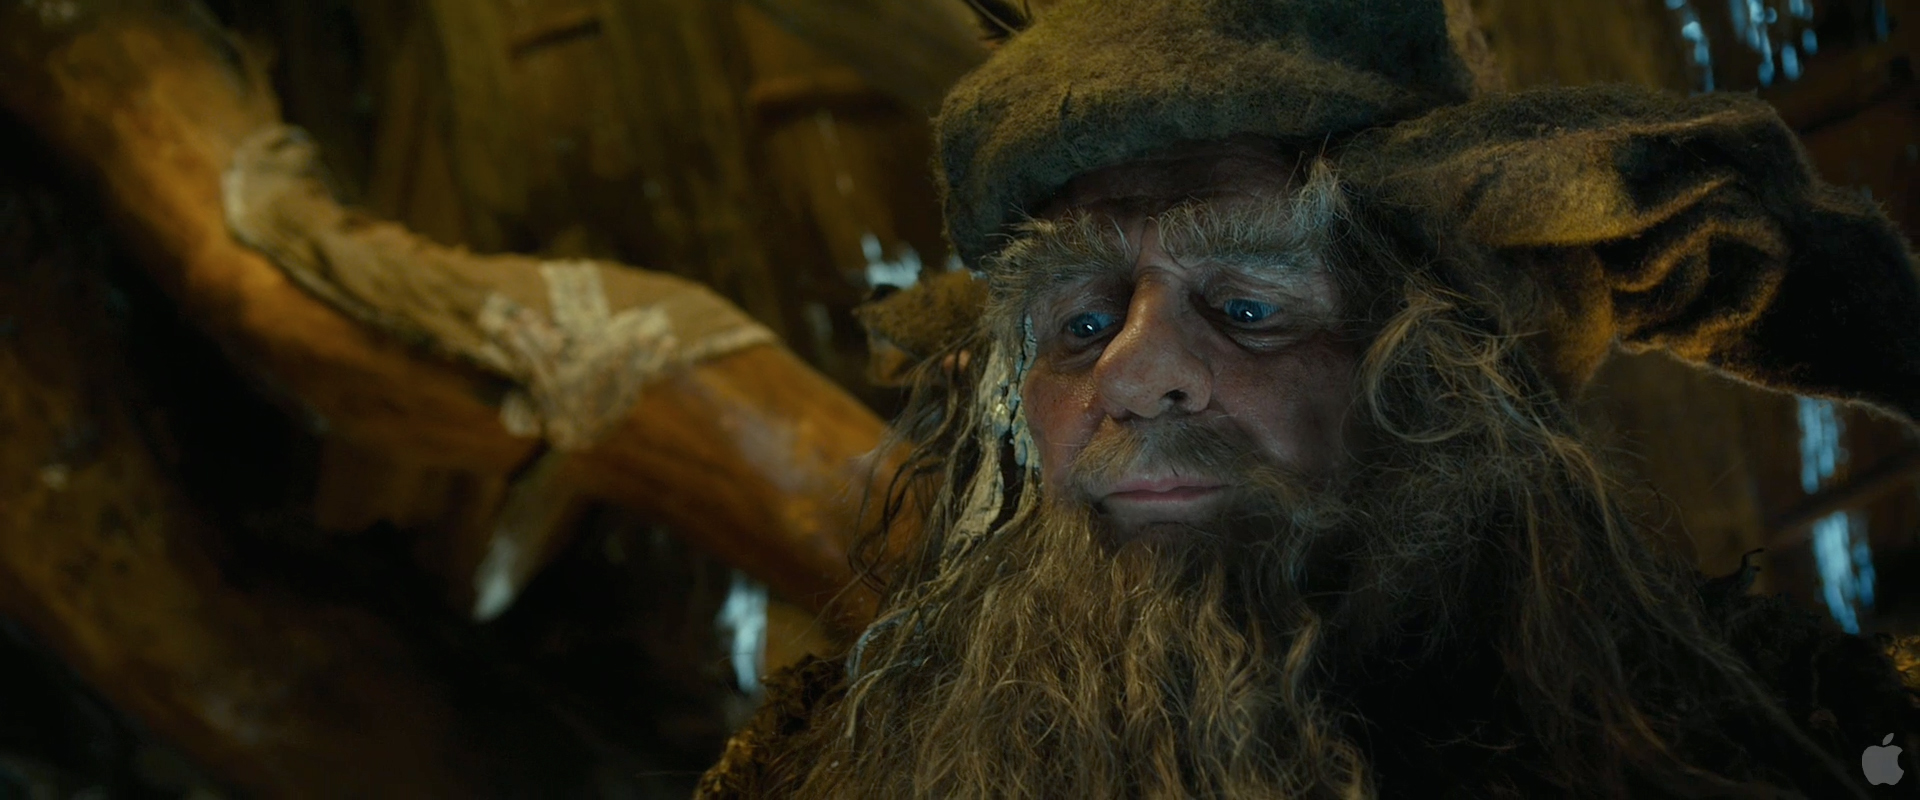 'The Hobbit: An Unexpected Journey' – Trailer 2 – Frame by Frame Analysis | Hobbit Movie News and Rumors | TheOneRing.net™